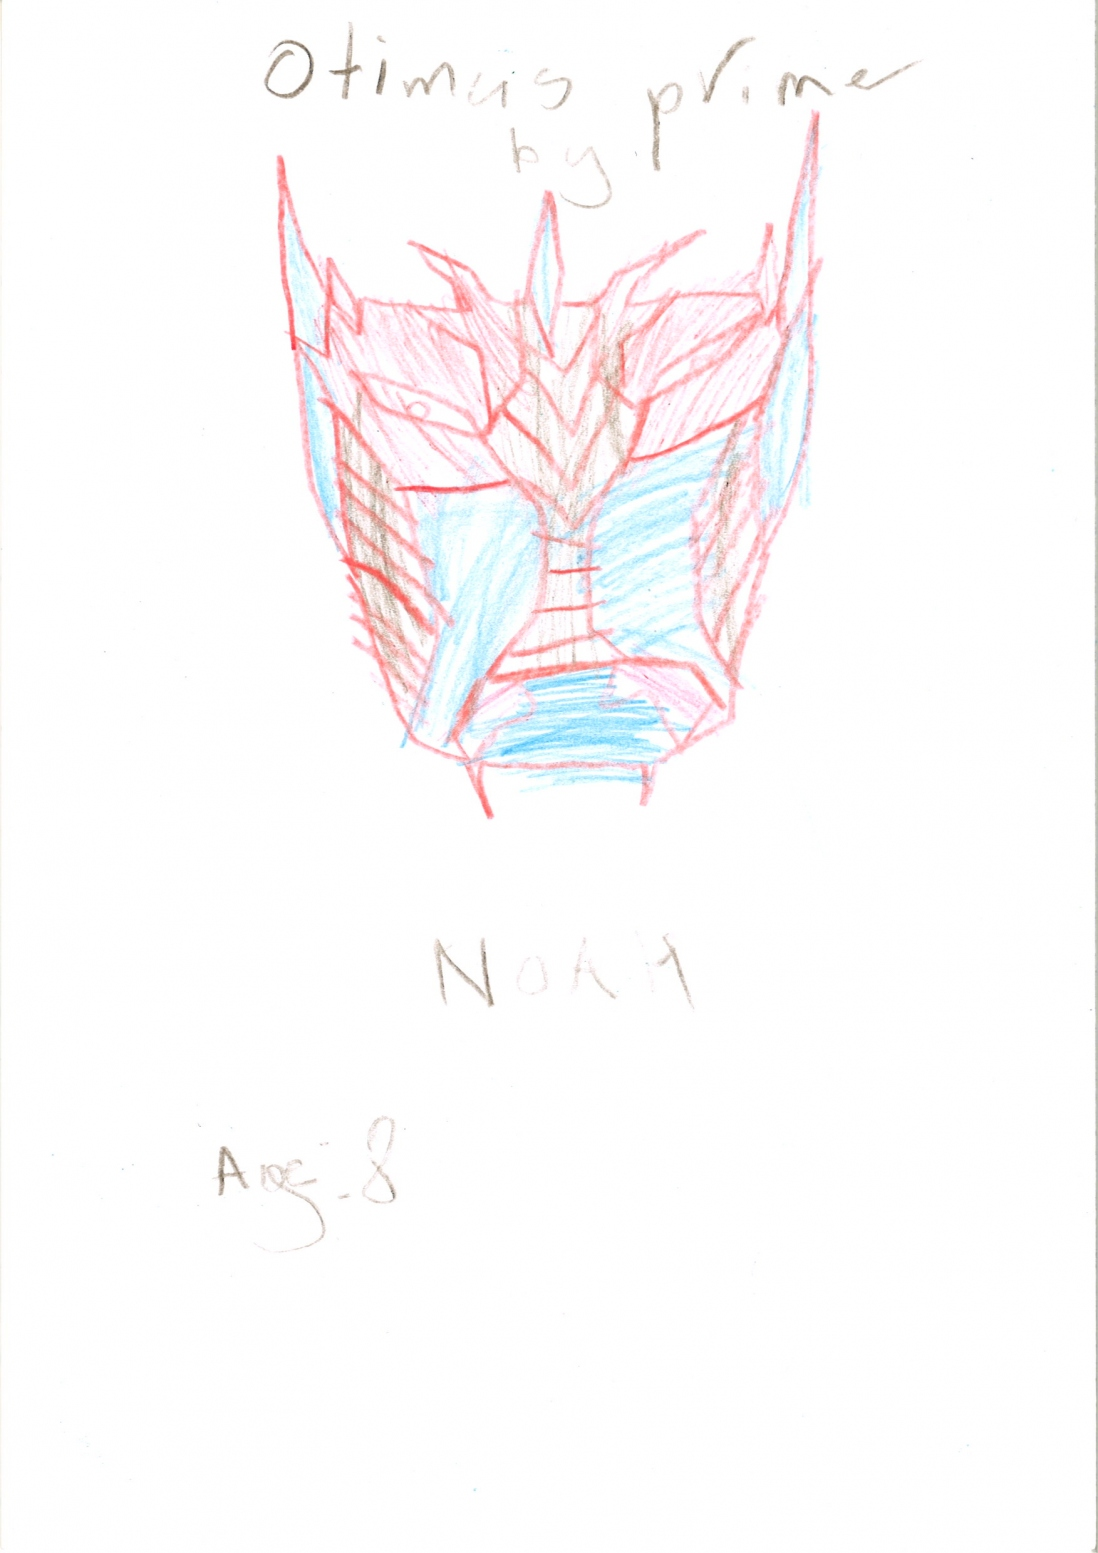 A child's drawing of the face of Optimus Prime, leader of the transformers